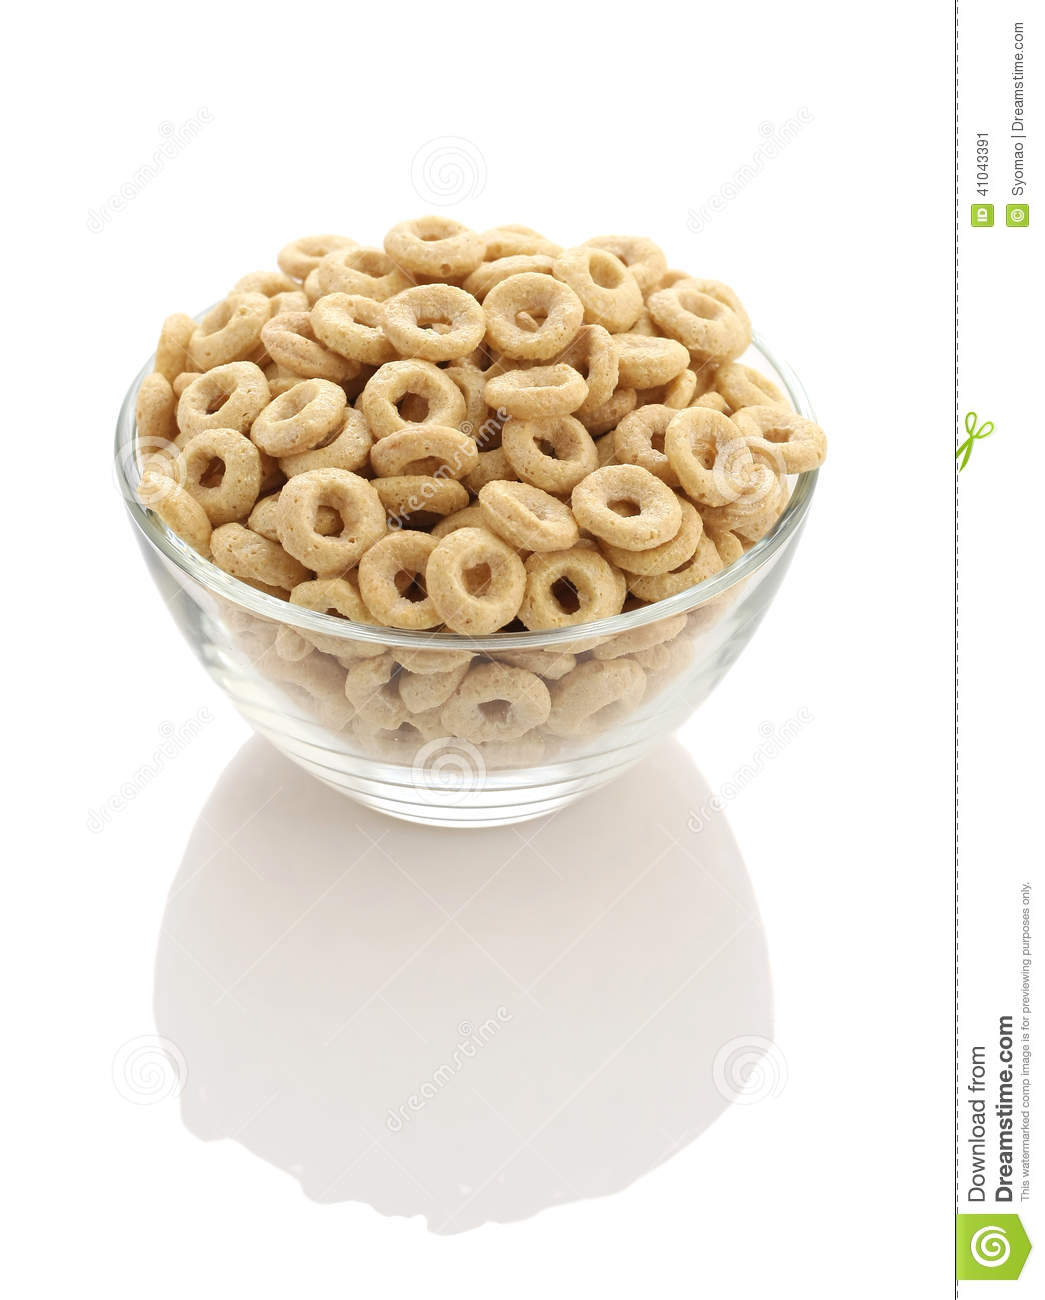 Healthy Cereal Rings In A Glass Bowl On A White Background